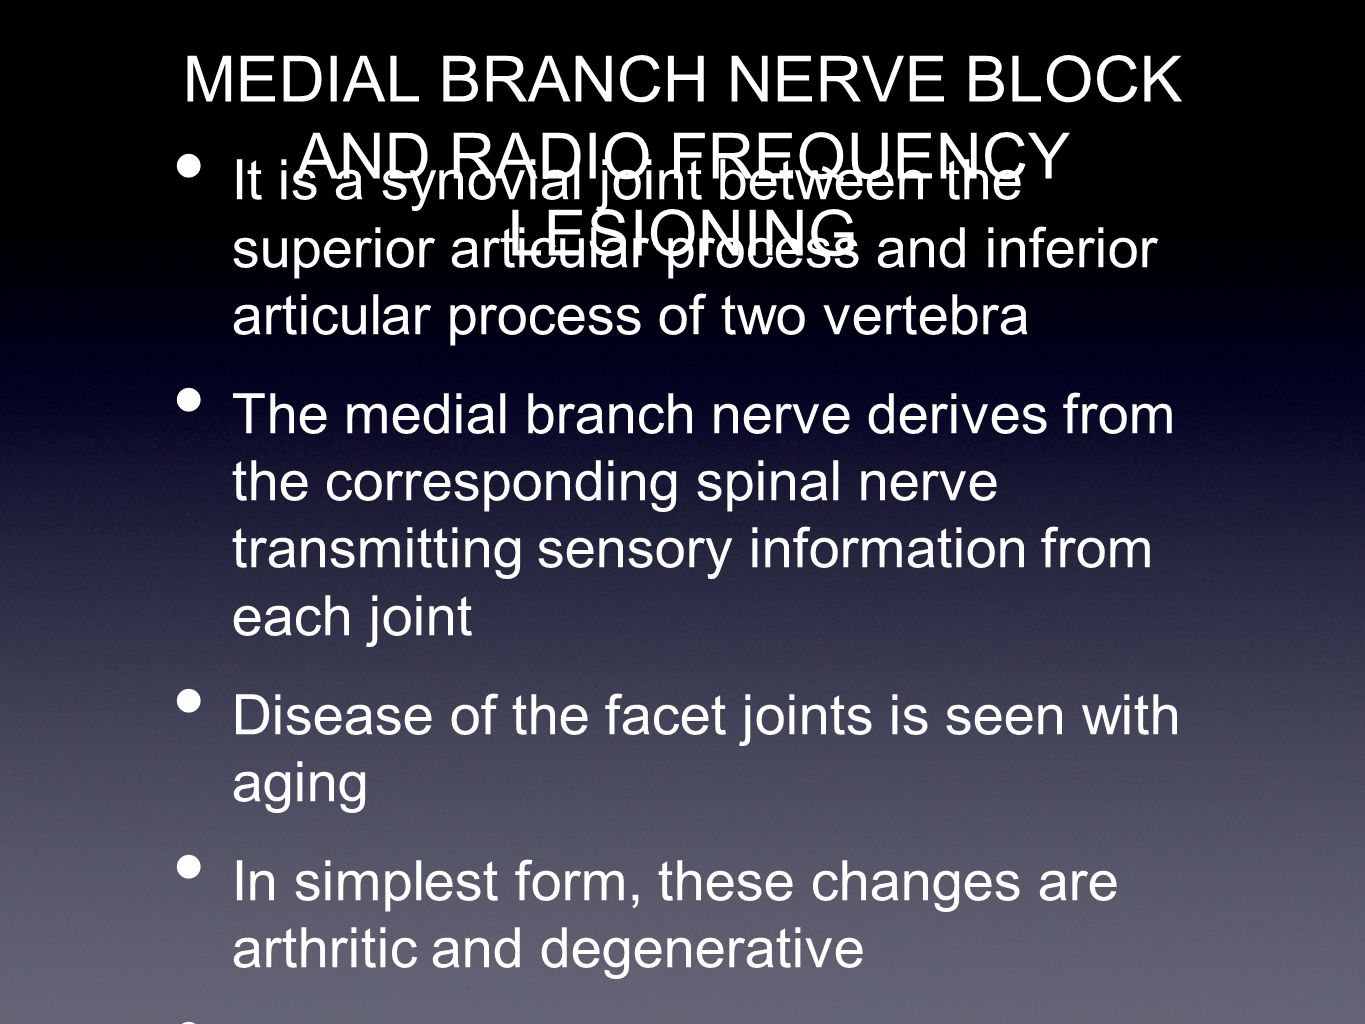 MEDIAL BRANCH NERVE BLOCK AND RADIO FREQUENCY LESIONING